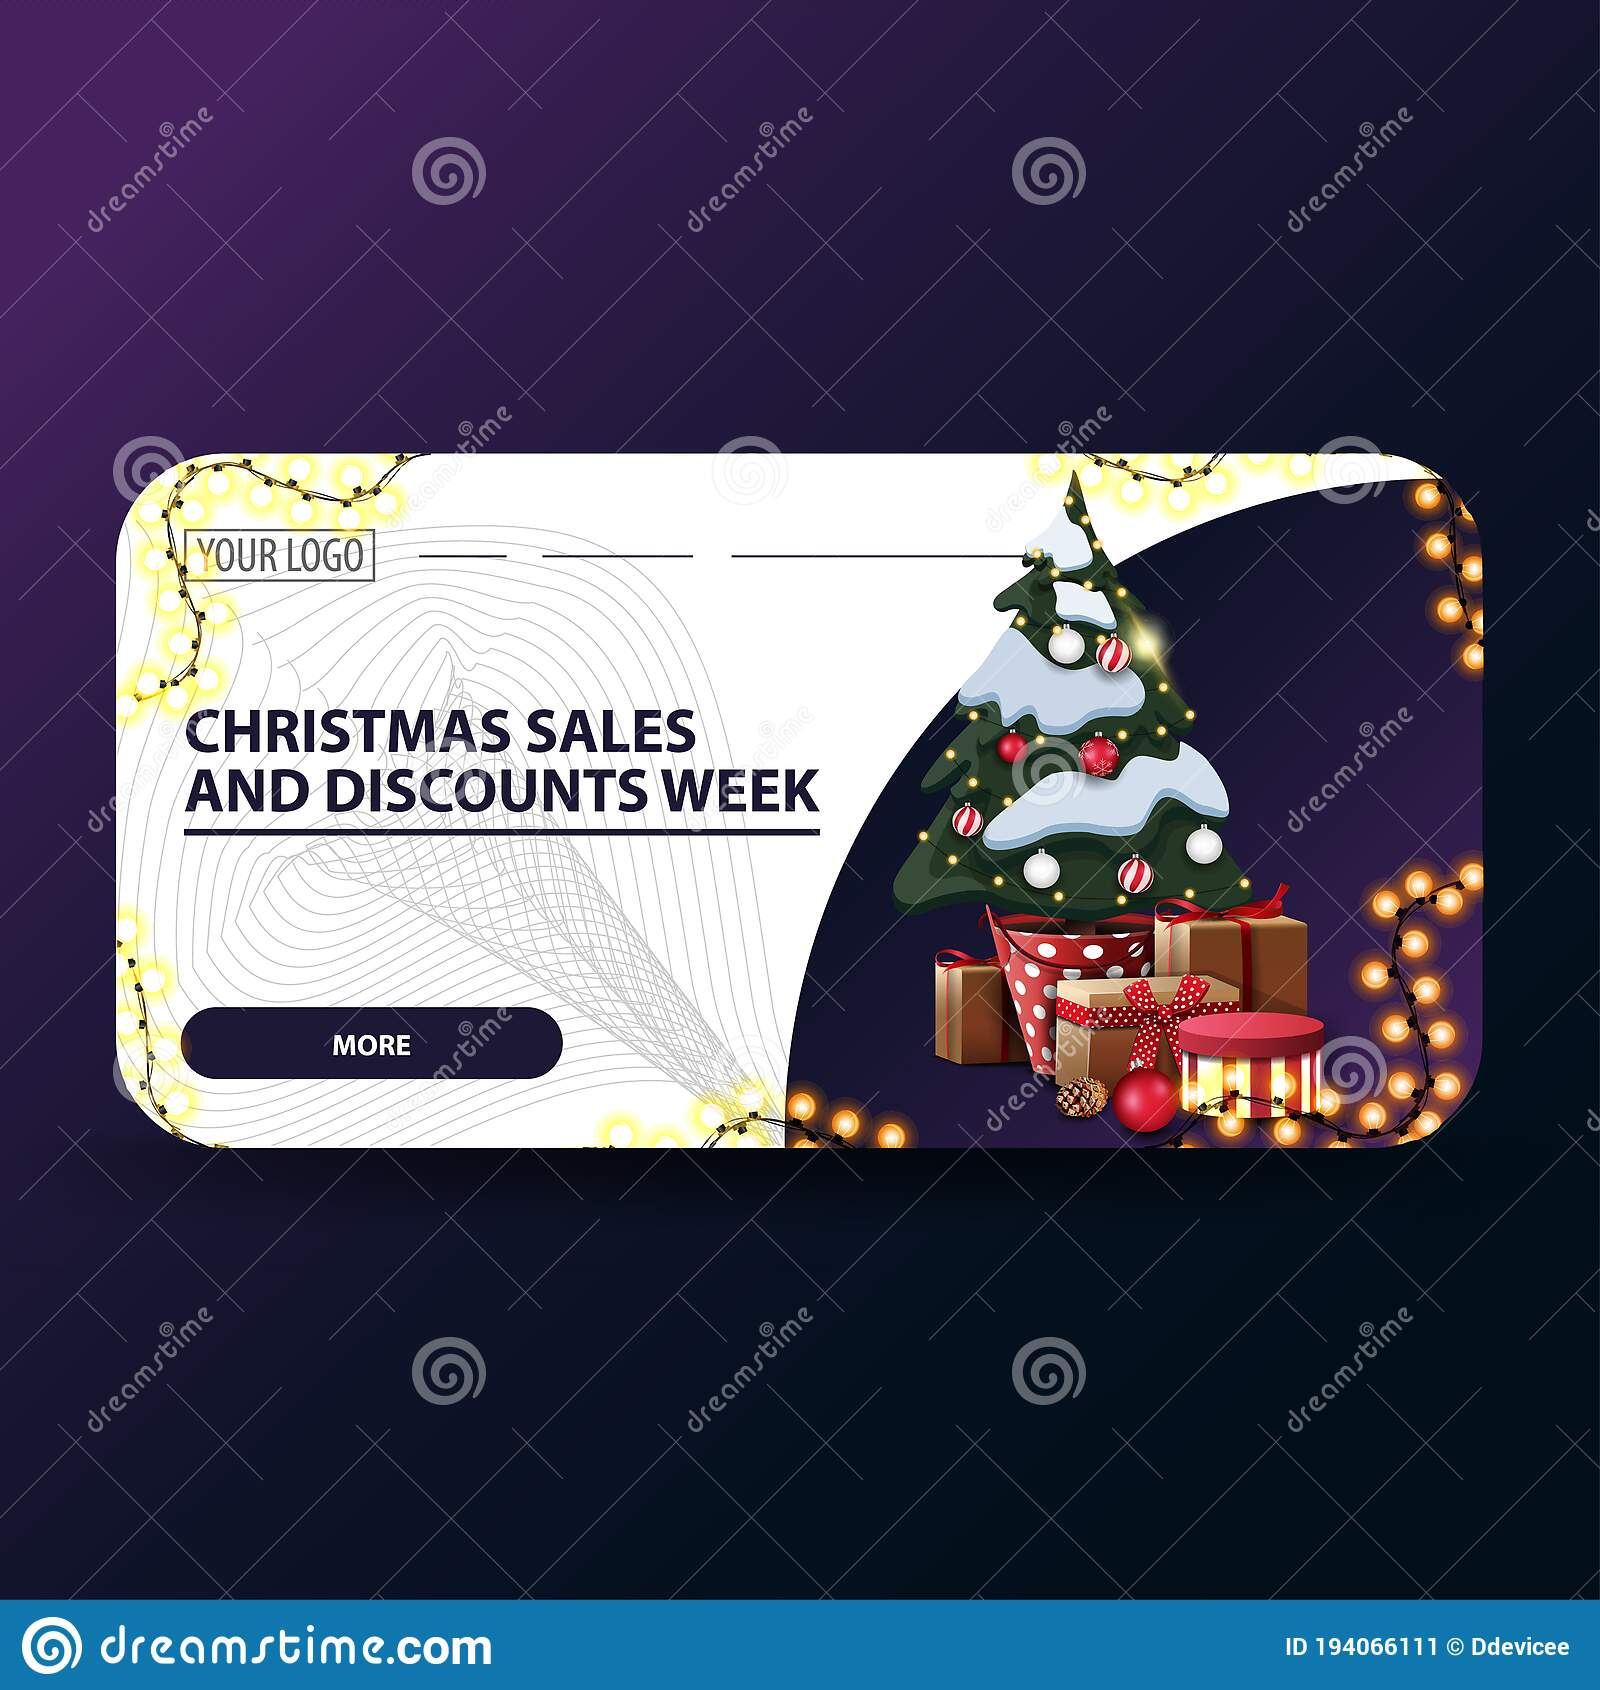 Christmas Sales And Discount Week White Modern Christmas Discount Banners With Rounded Corners Garland And Christmas Tree Stock Vector Illustration Of Business Christmas 194066111